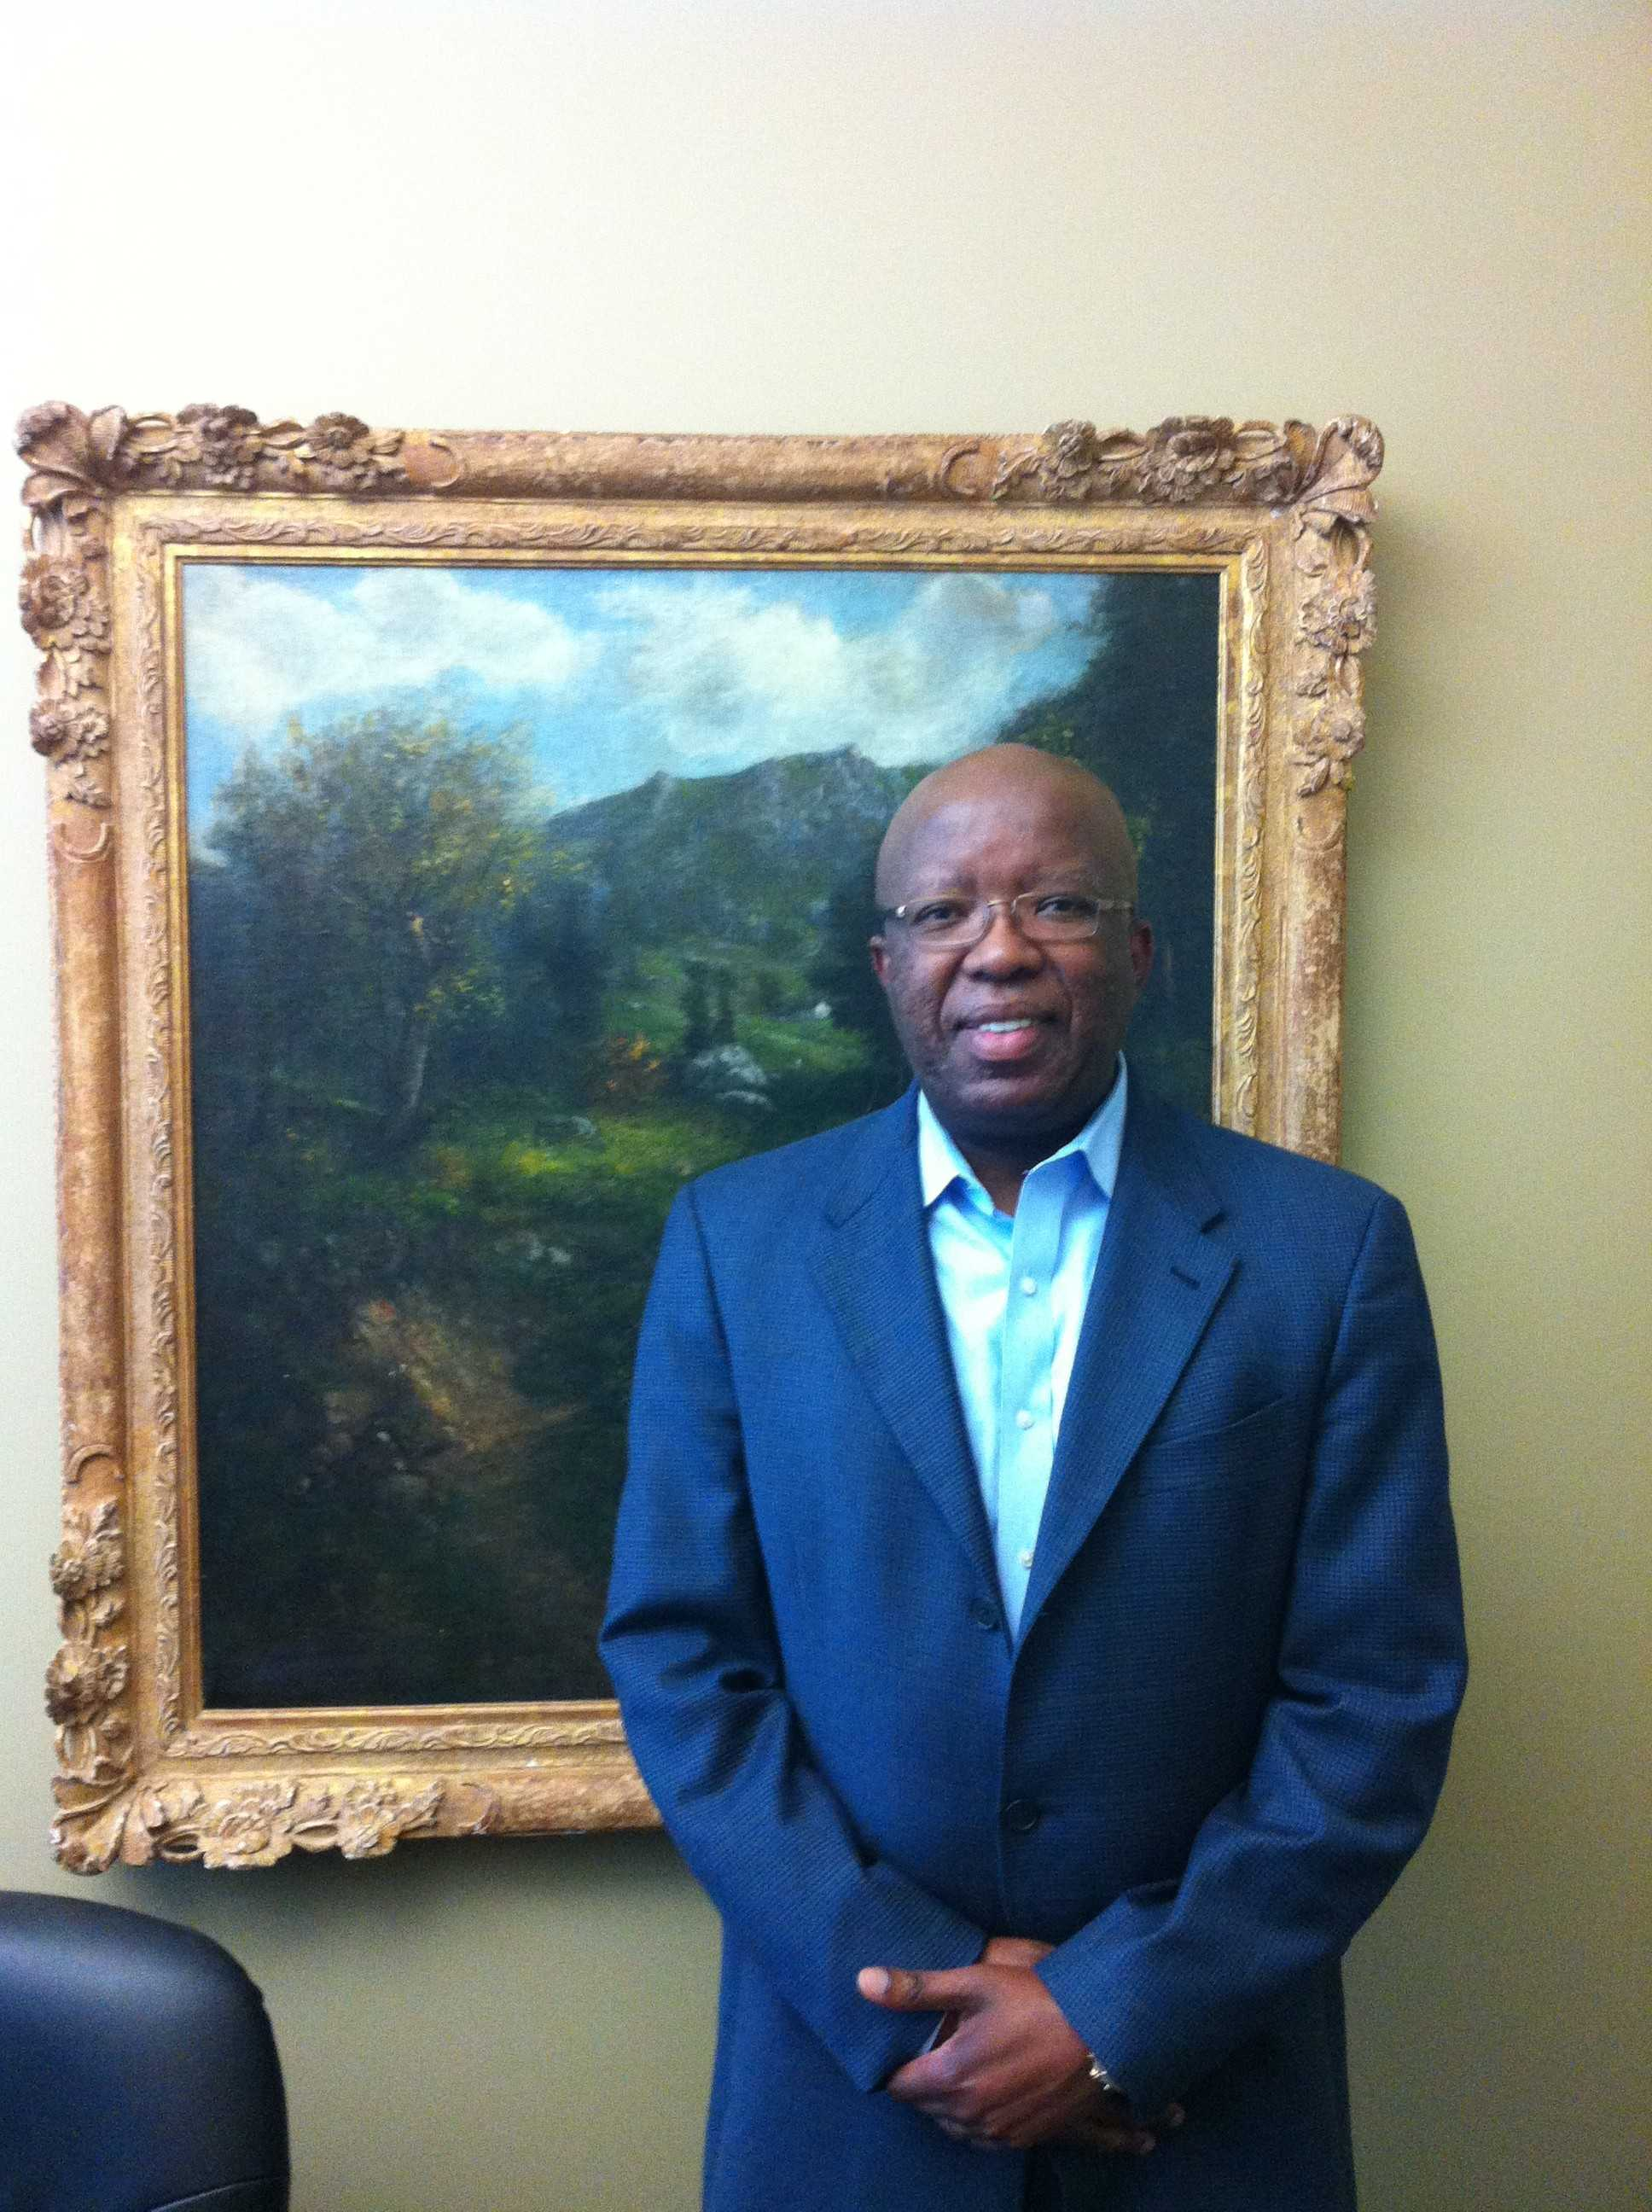 Seane in his office at UNF's Intercultural Center for PEACE.